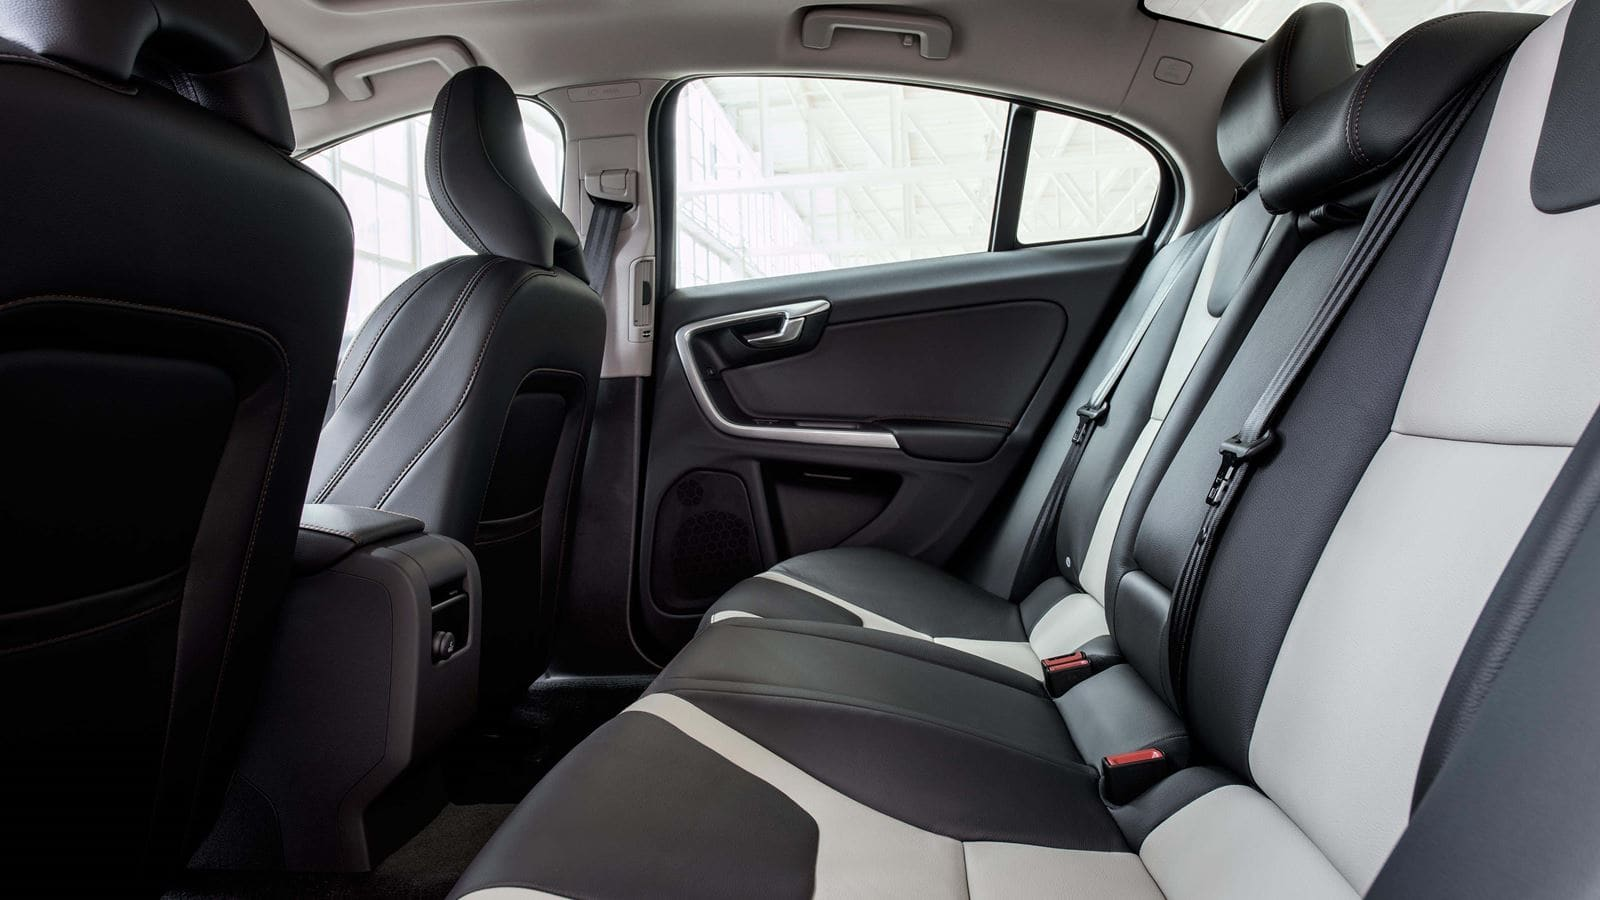 volvo-s60-crosscountry-interior-view-rear-seats-v1